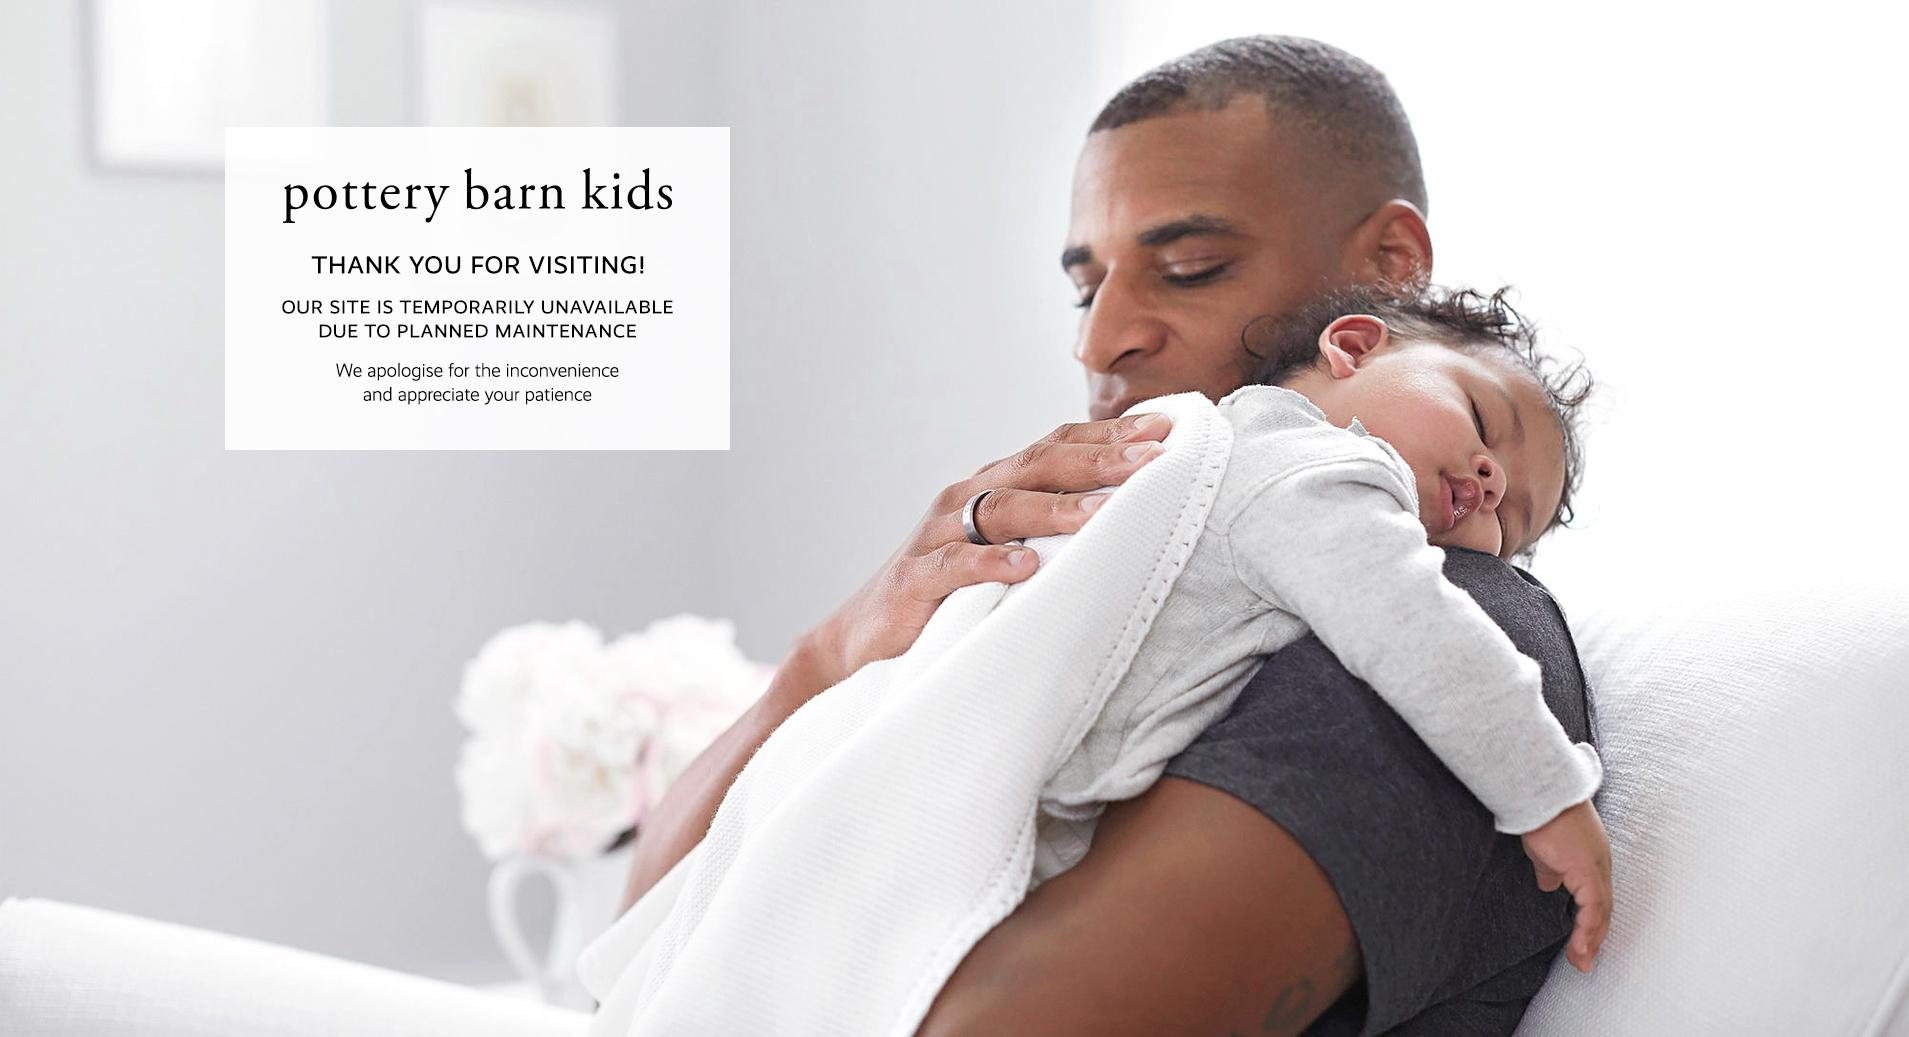 Thank you for visiting pottery barn kids. Our site is temporarily unavailable due to a planned maintenance. We apologize for the inconvenience and appreciate your patience.